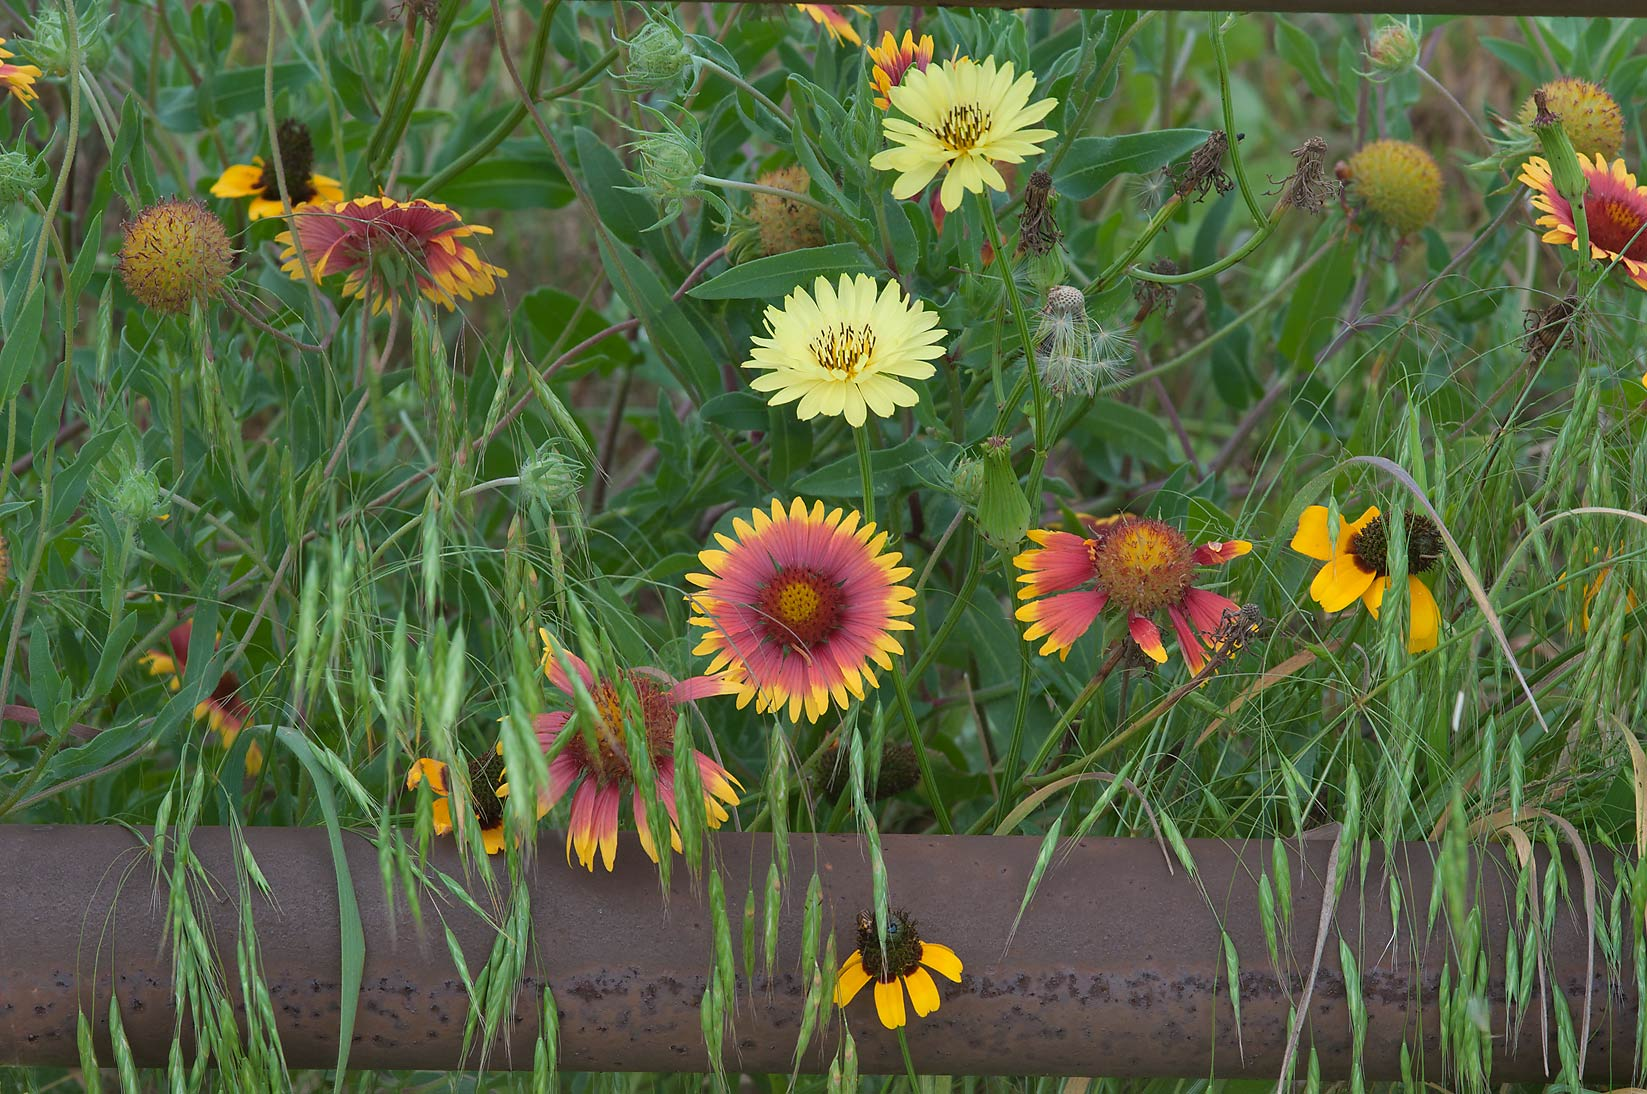 Flowers over a rusty fence near Old Chappell Hill Rd.. Texas